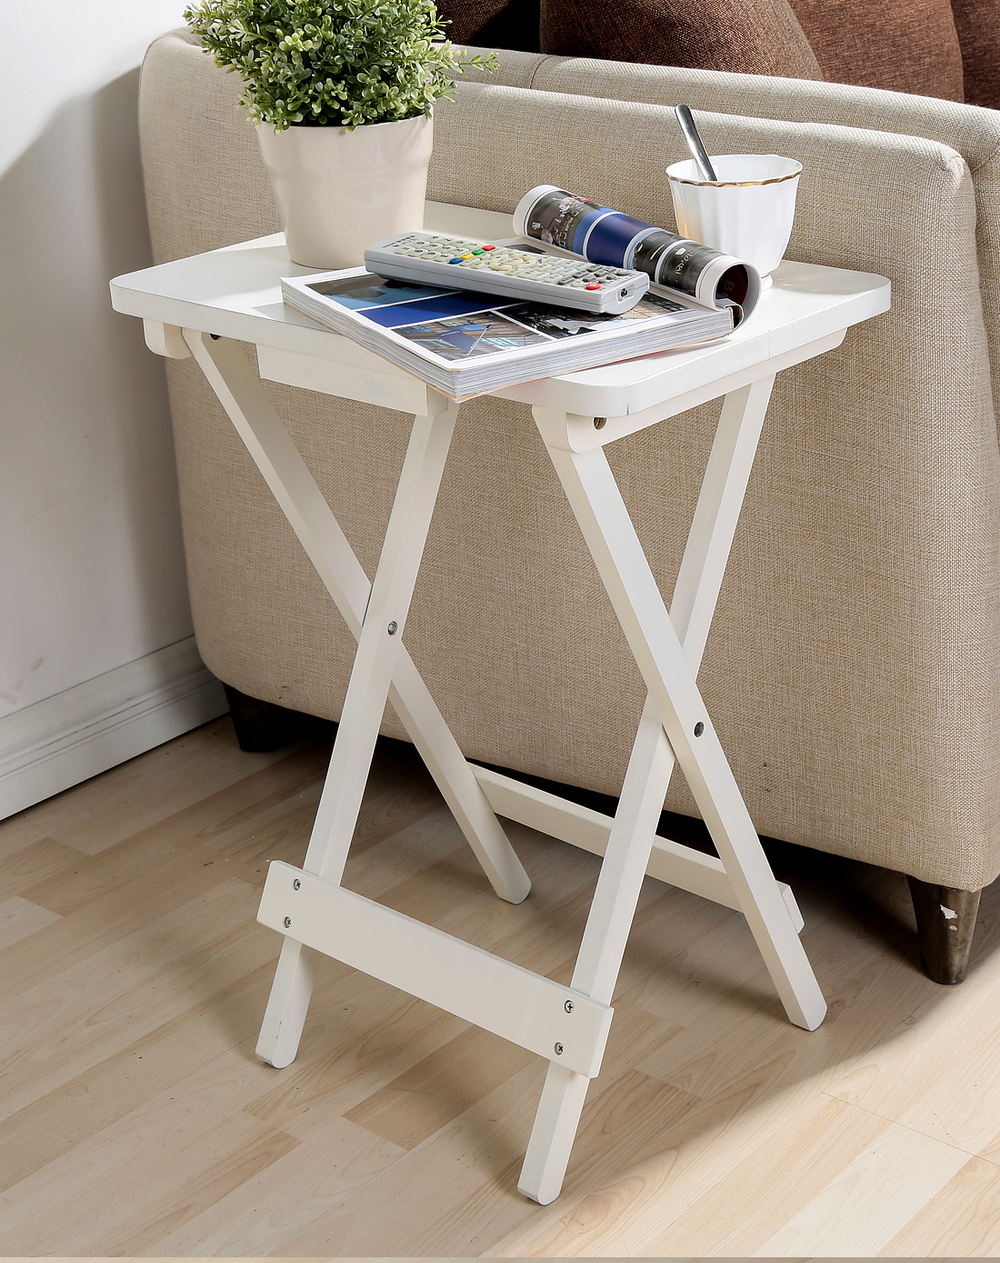 mobile creative wood small coffee table white minimalist